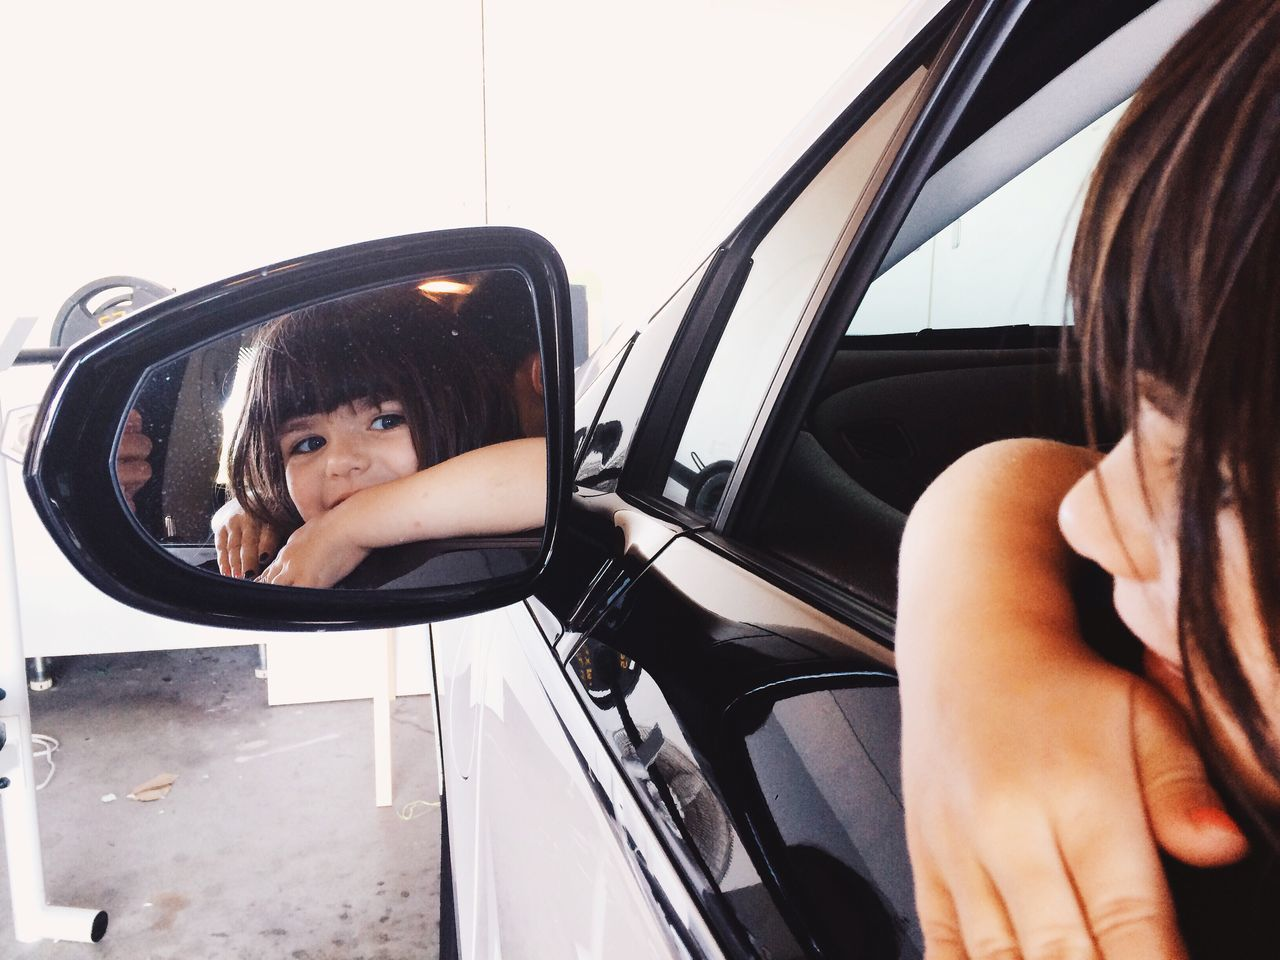 Smiling girl reflecting on side-view mirror